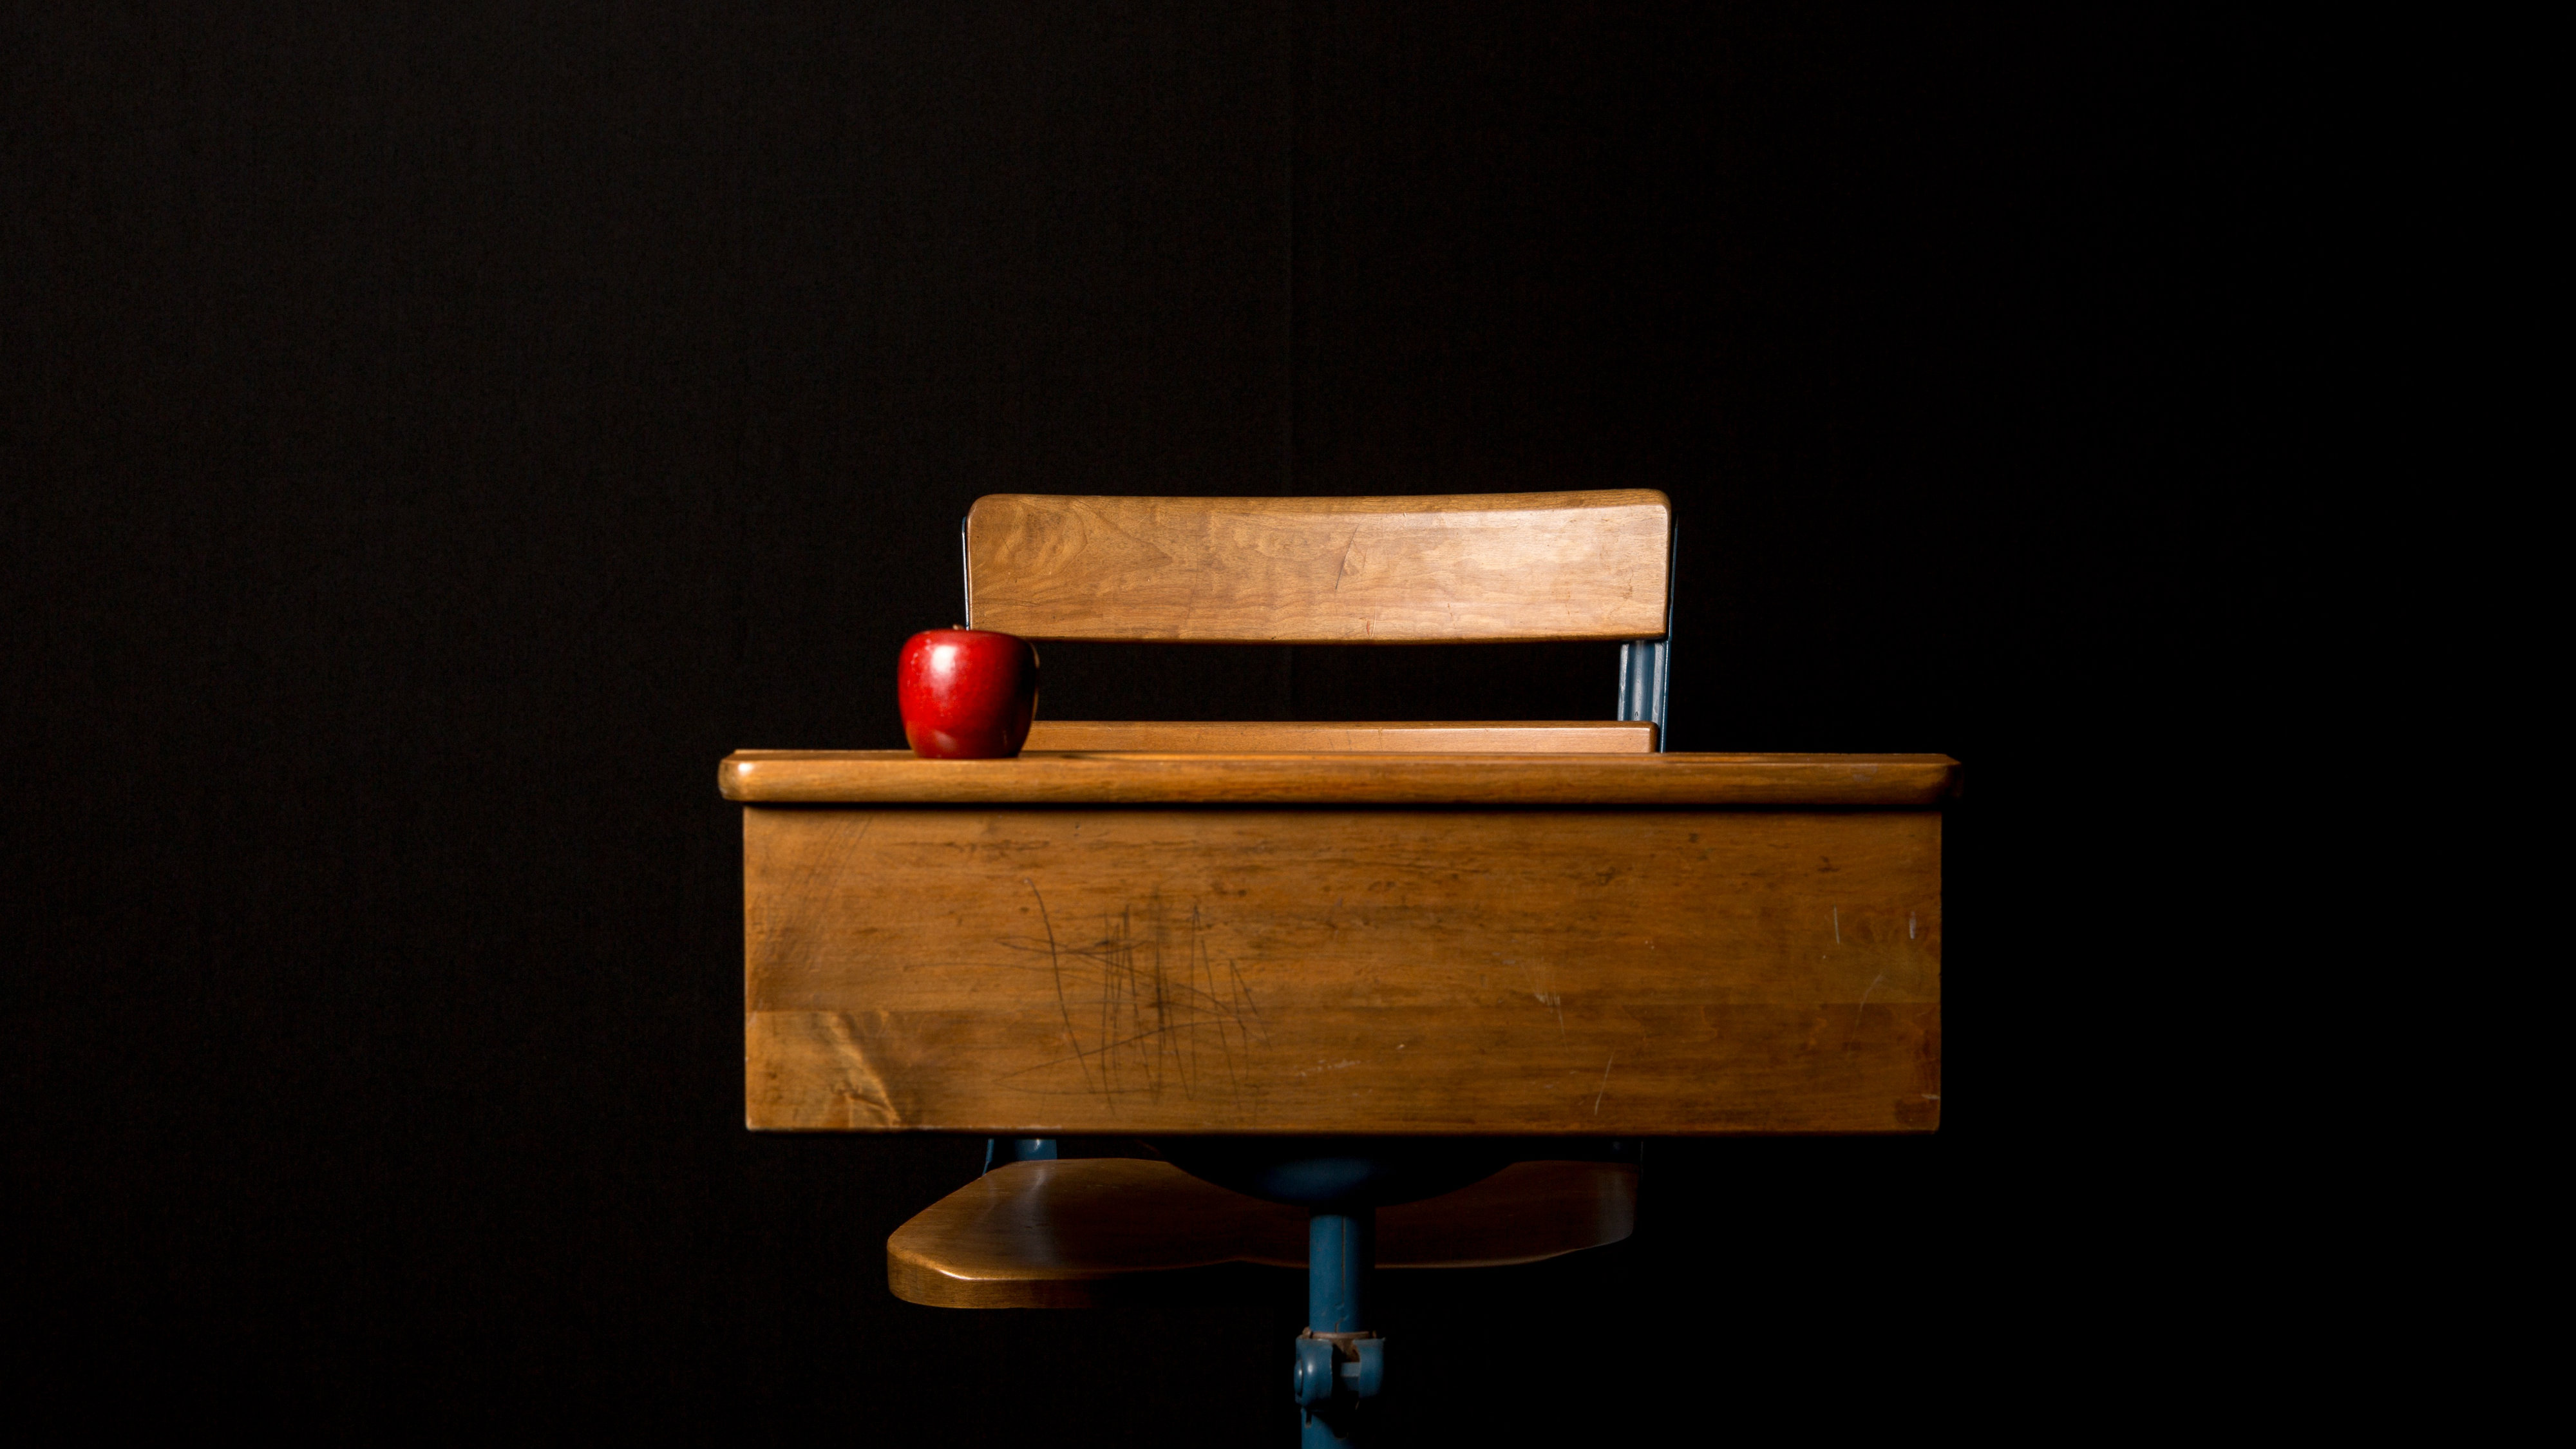 A classroom desk with black background